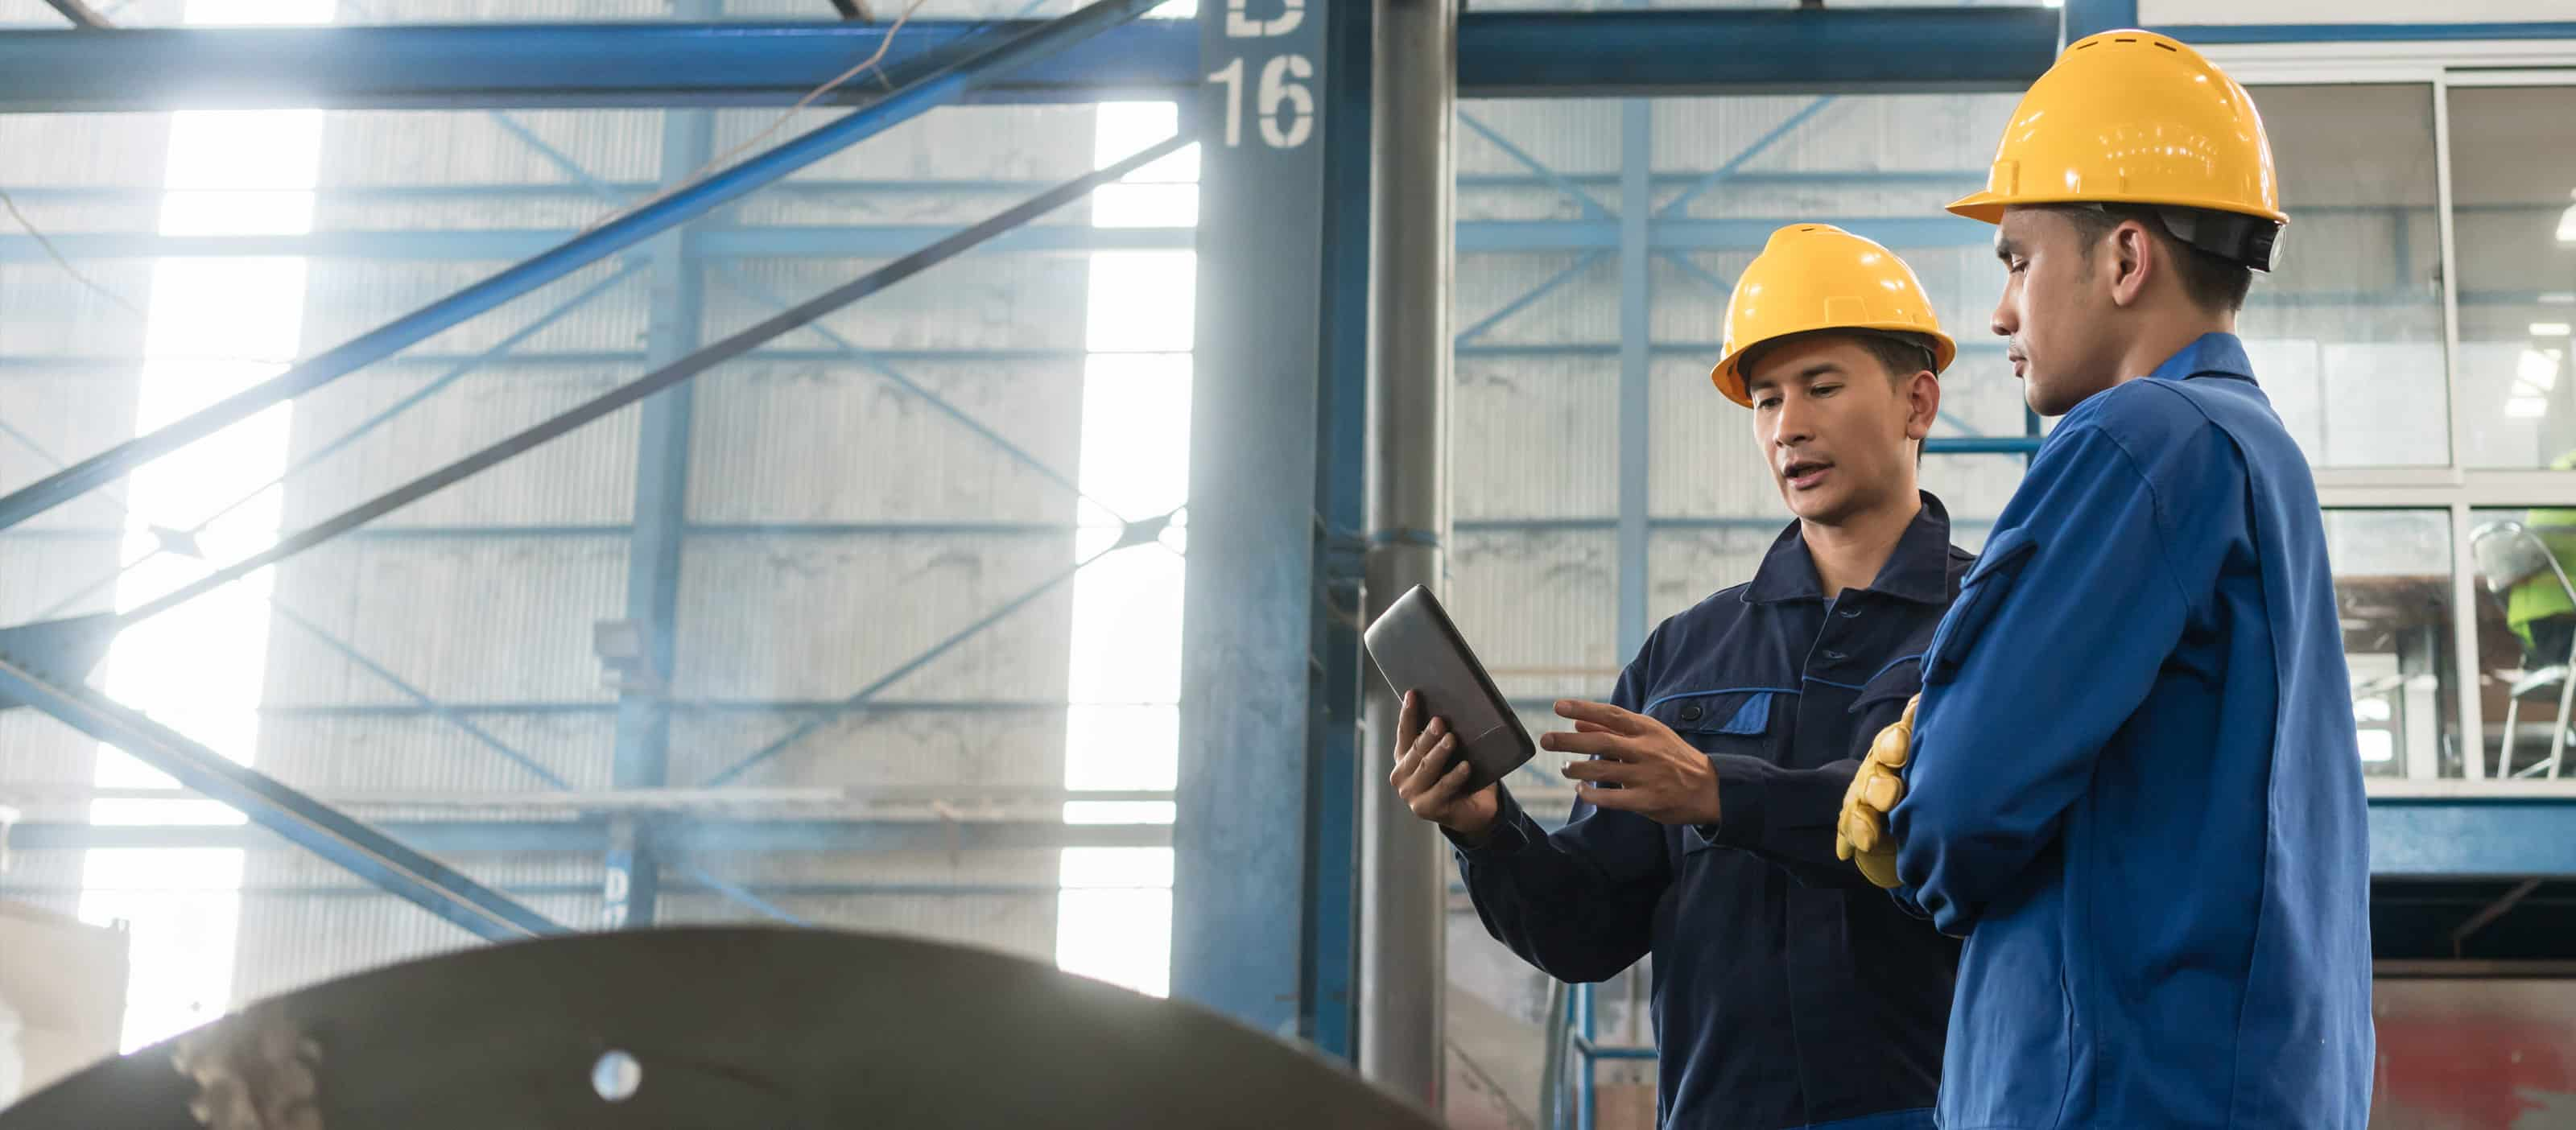 Engineers using GE Digital industrial software on mobile device